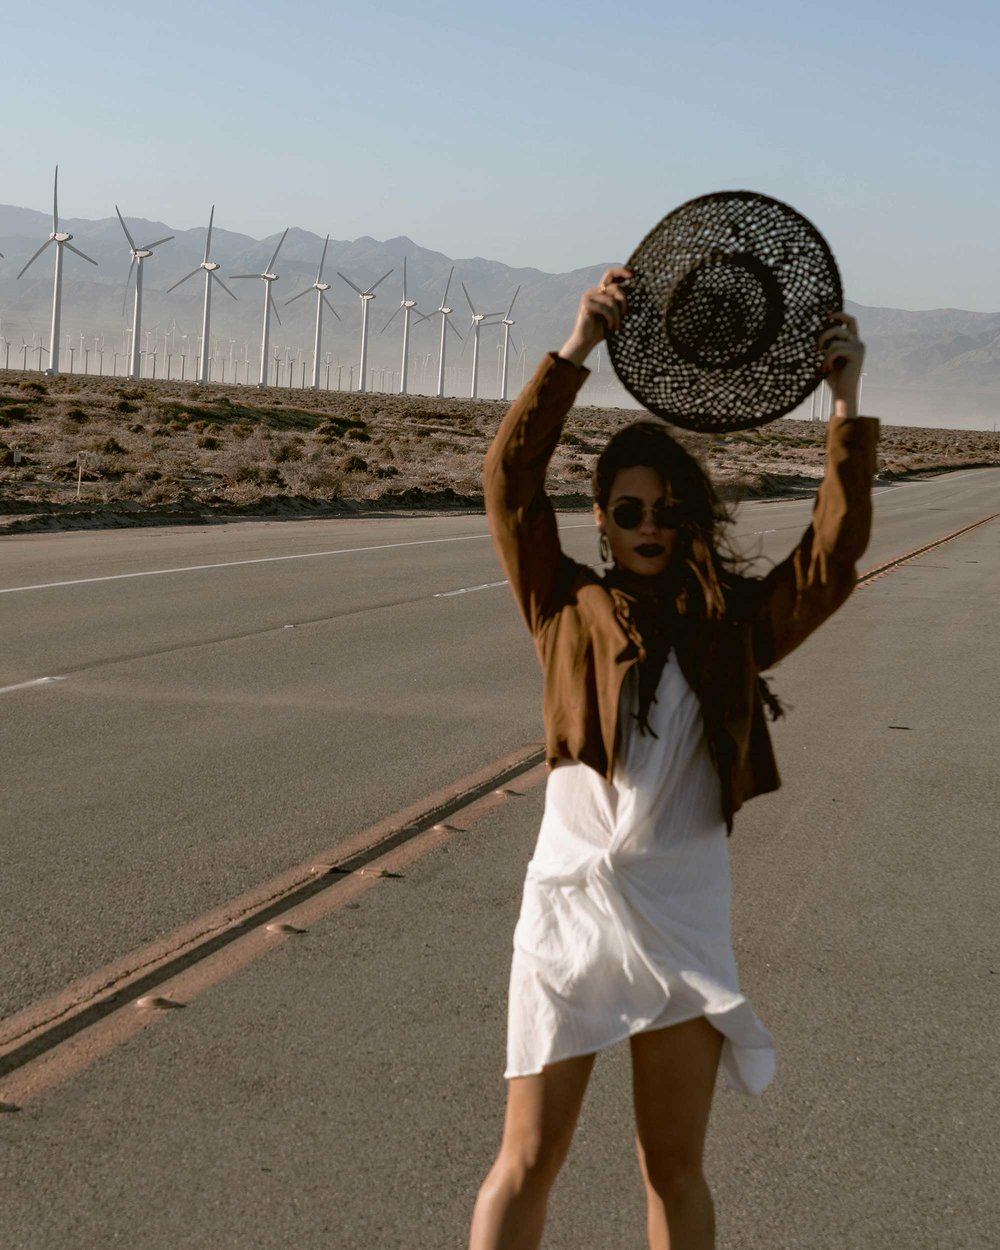 Sarah-Butler-of-Sarah-Styles-Seattle-wears-Jacquemus-Alassio-draped-white-cotton-mini-dress,-Paige-Darlene-Fringed-Suede-Jacket,-and-Paige-suede-western-boot-in-Palm-Springs-for-Coachella-Festival-Outfit-_-@sarahchristine5.jpg